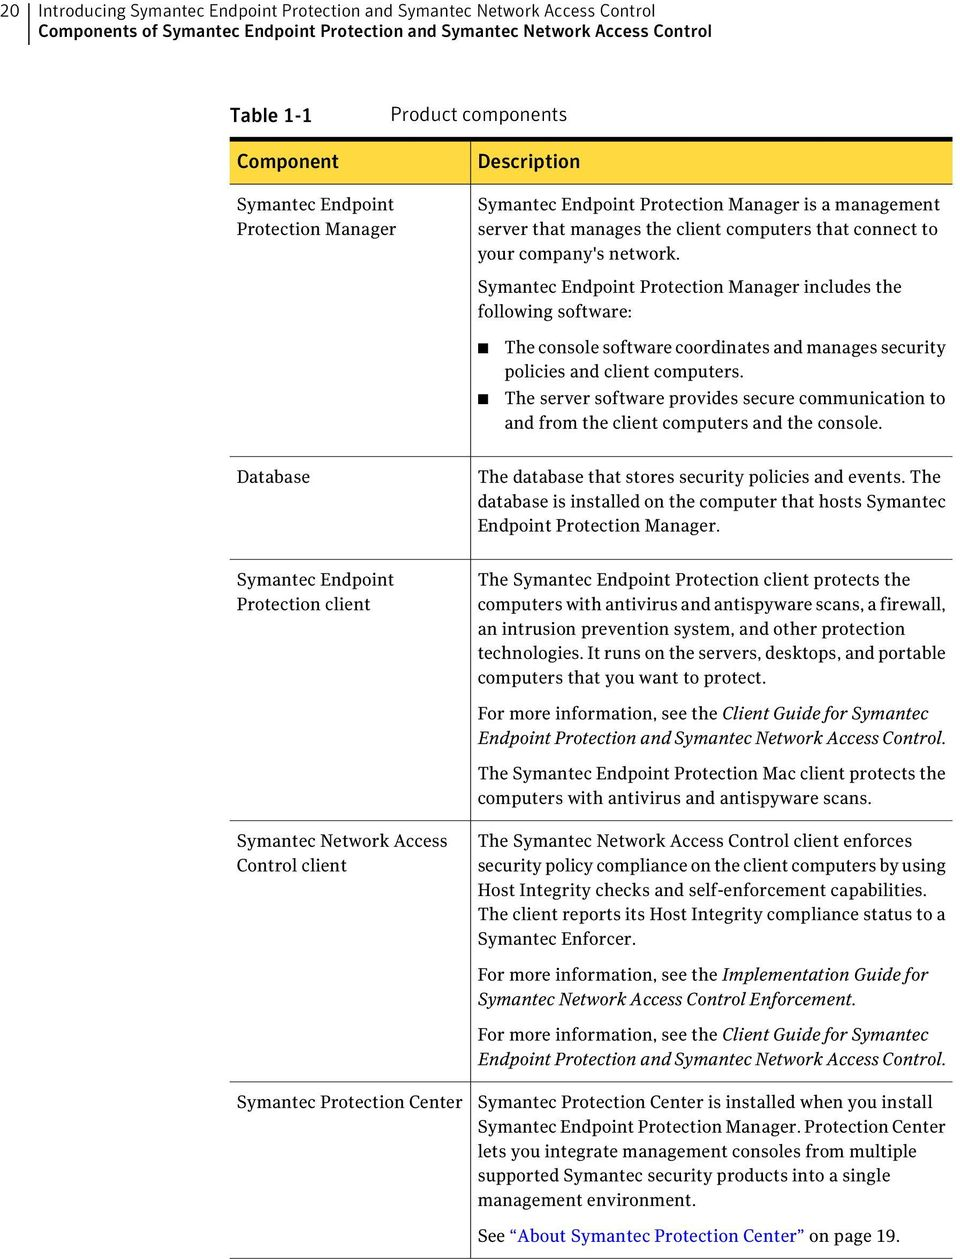 Installation Guide for Symantec Endpoint Protection and